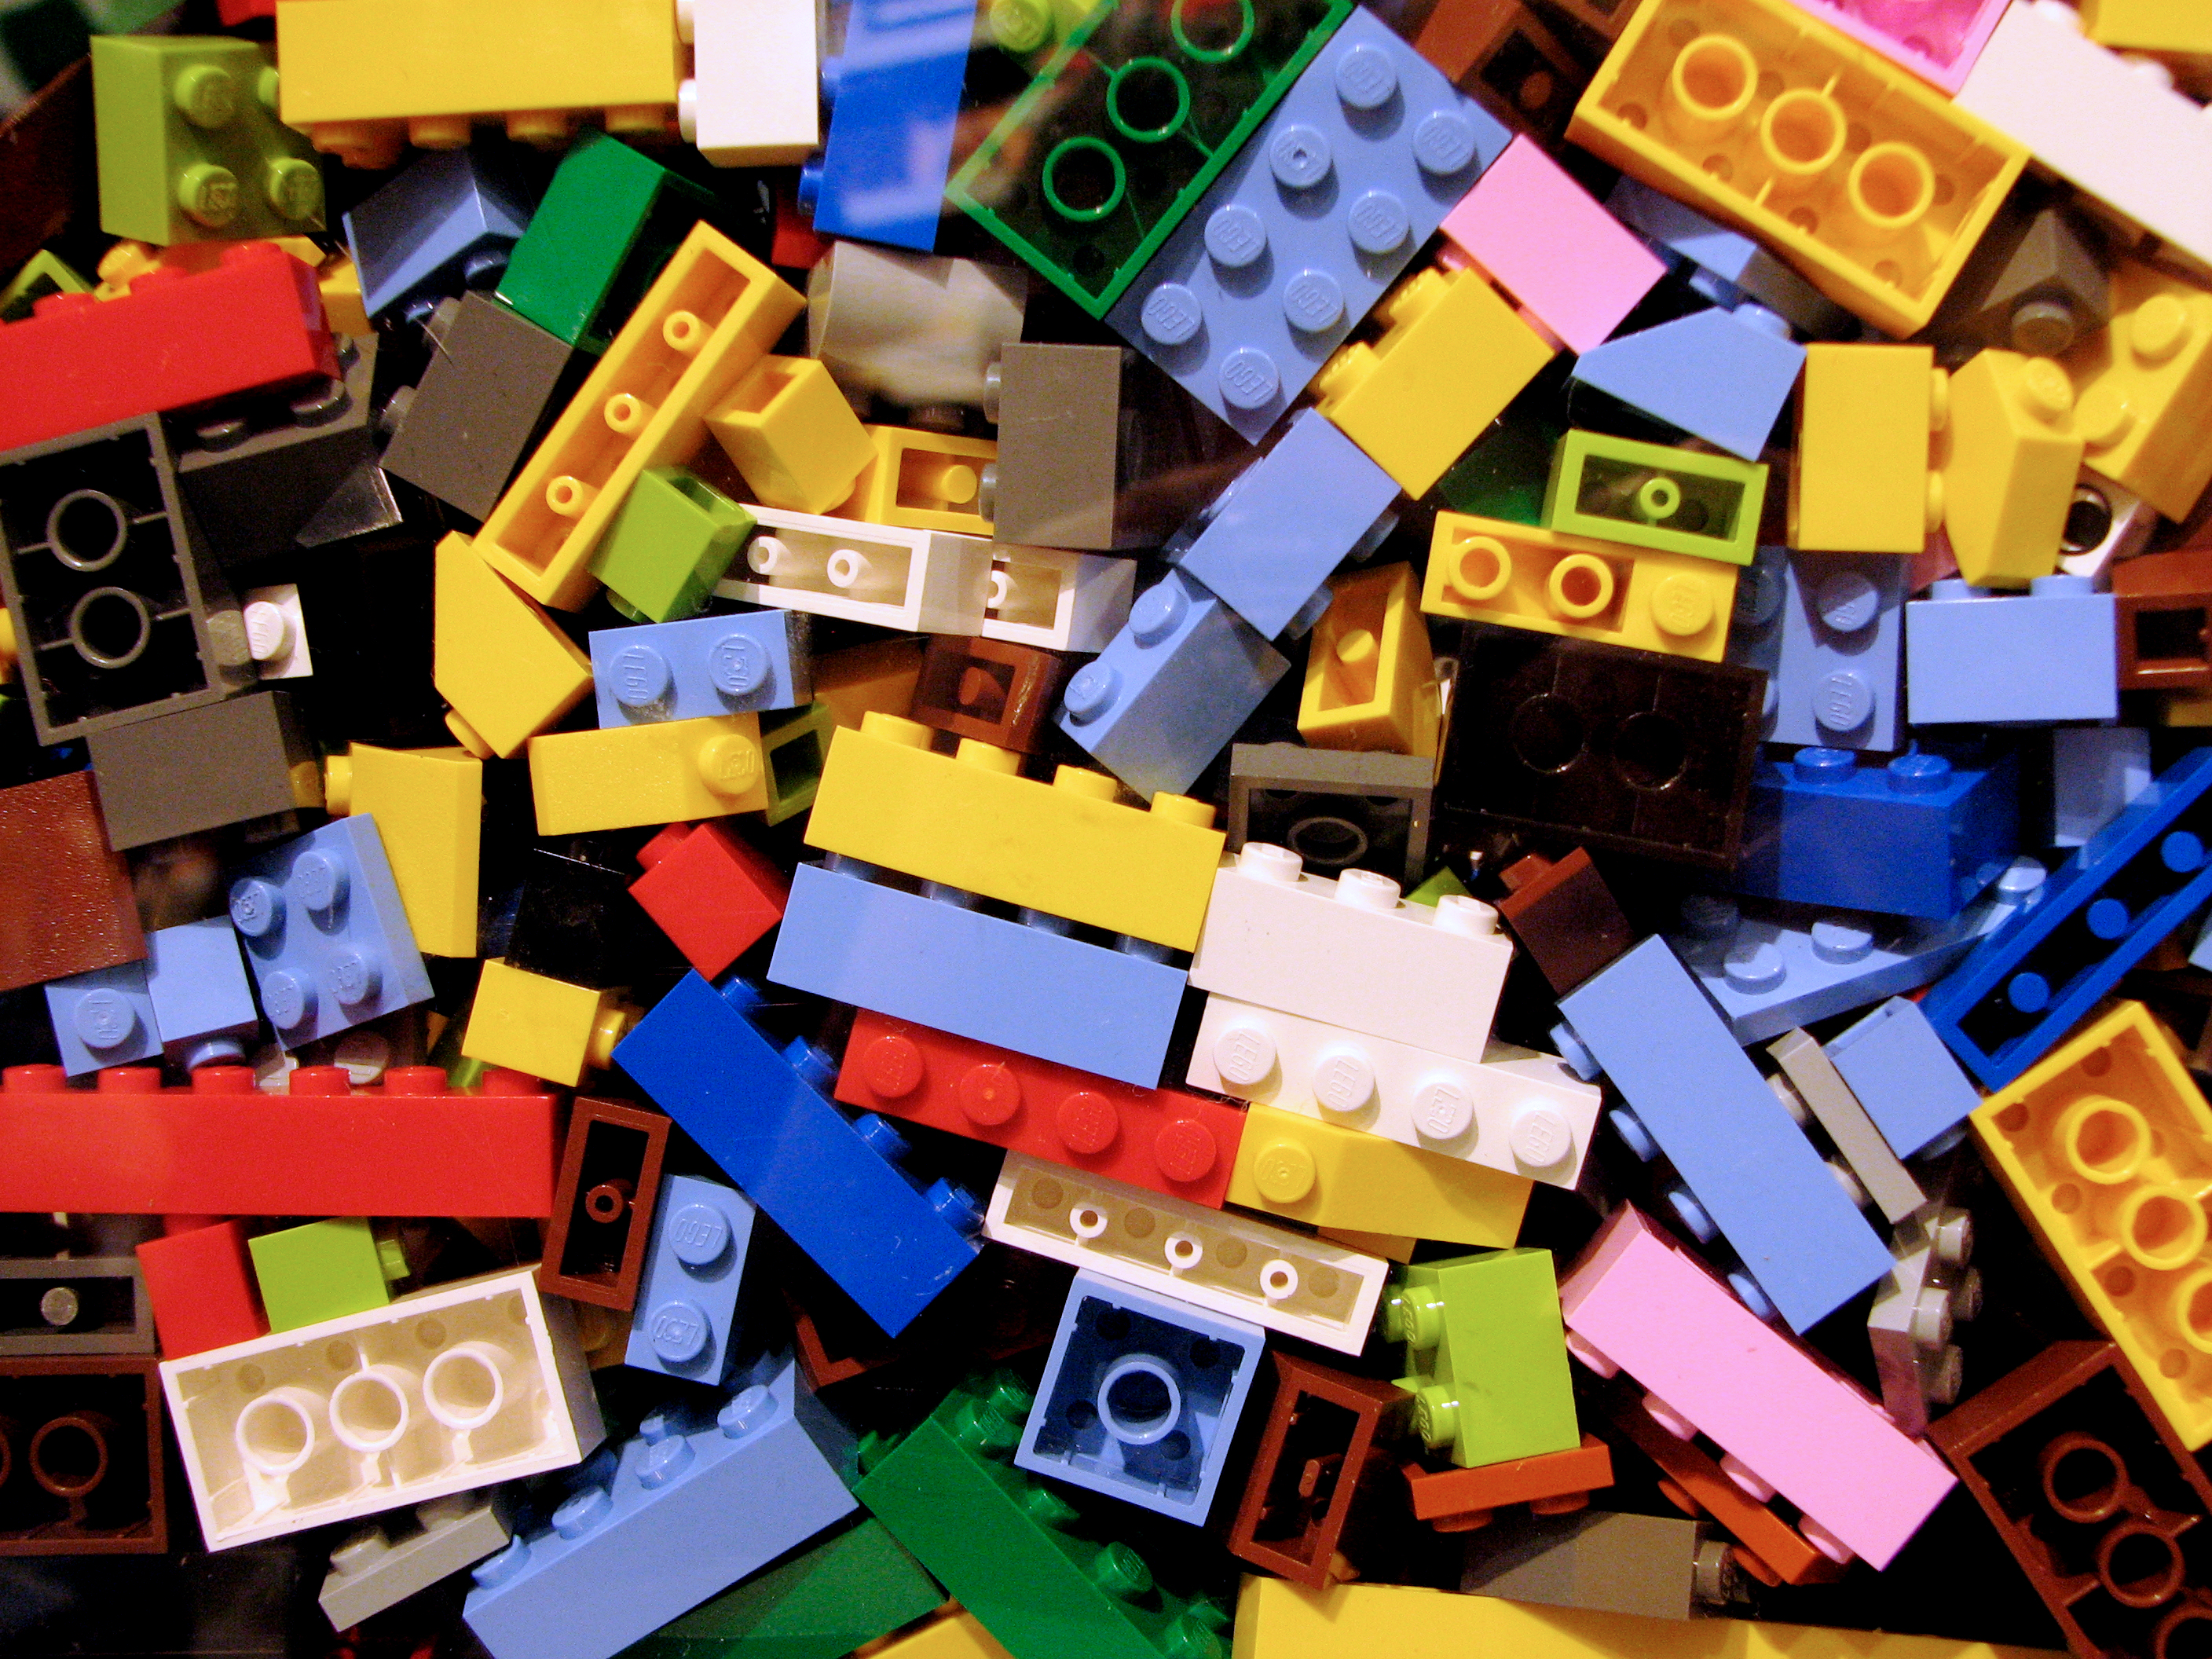 File:Lego bricks.jpg - Wikimedia Commons